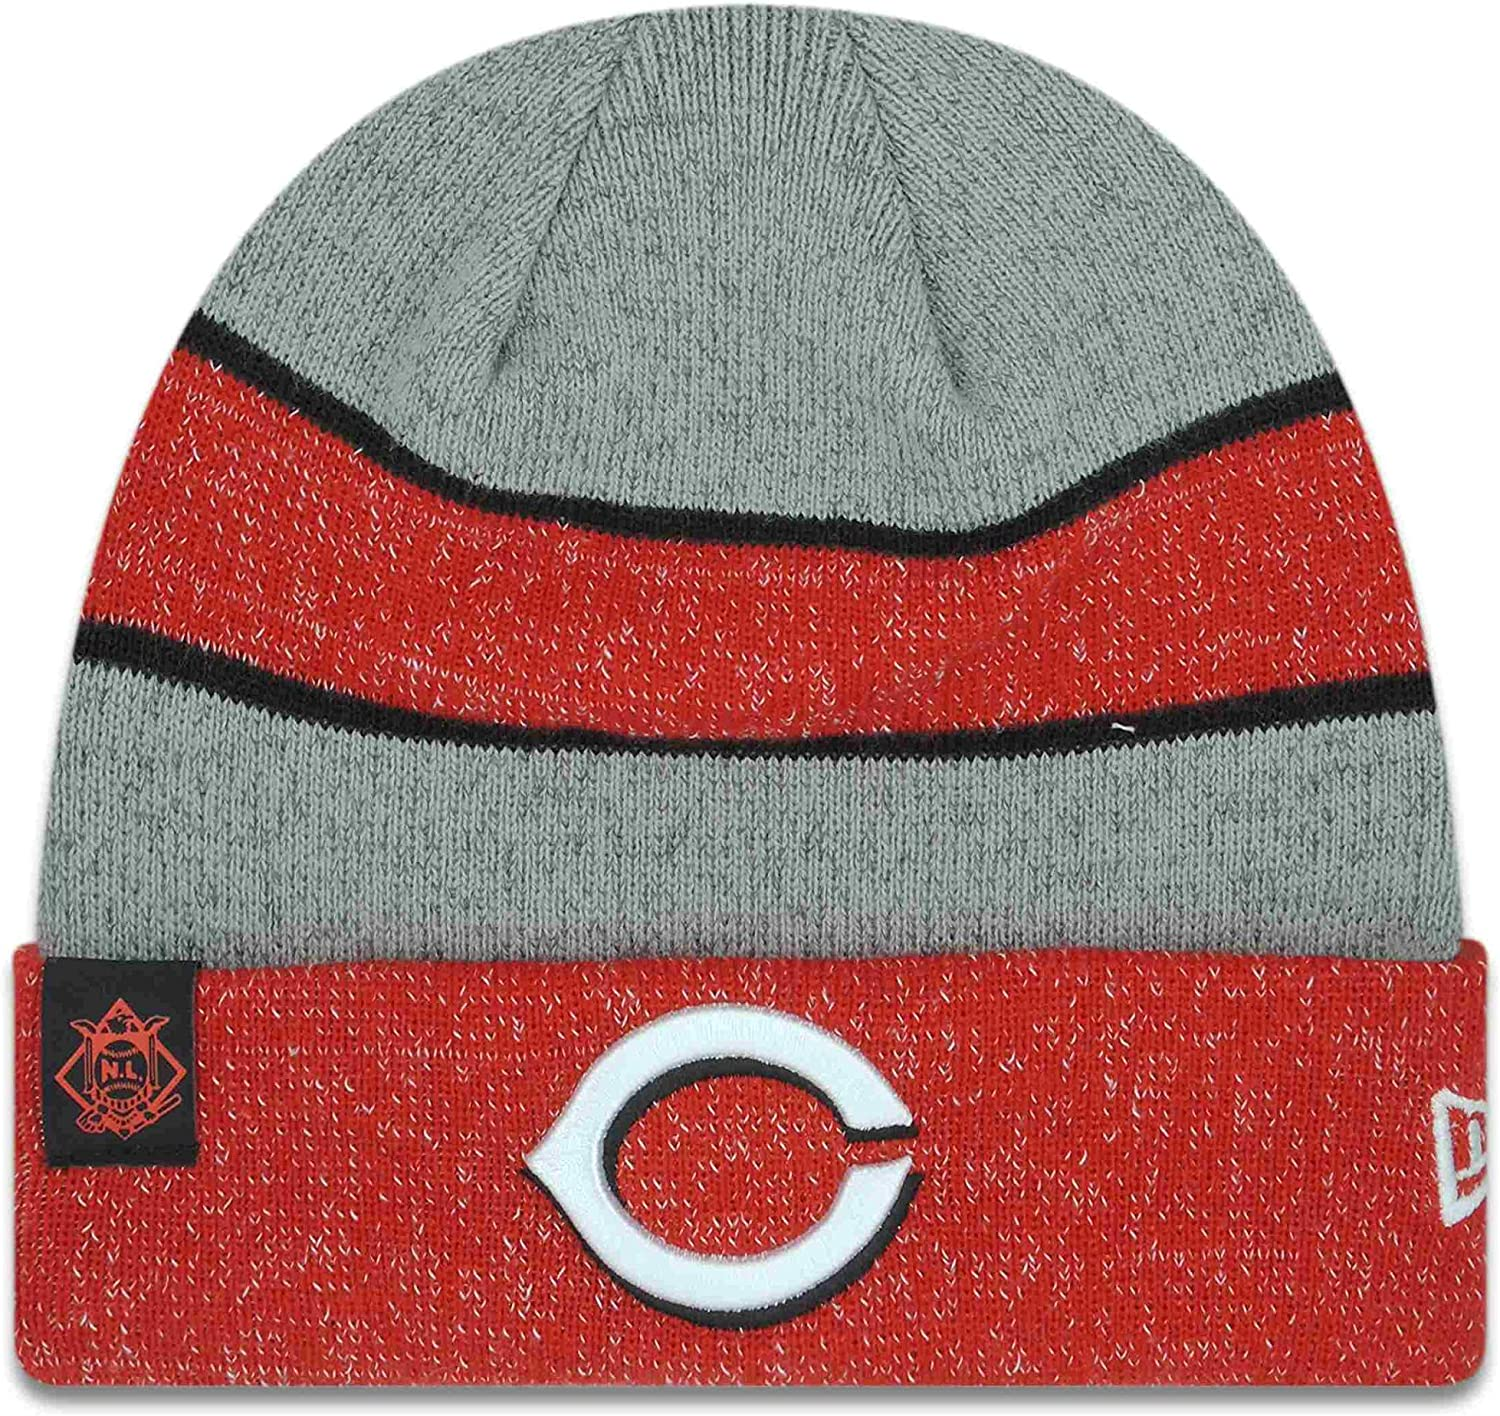 New Free shipping Era Authentic Cincinnati Reds Team Sport Beanie Max 73% OFF O Knit Color